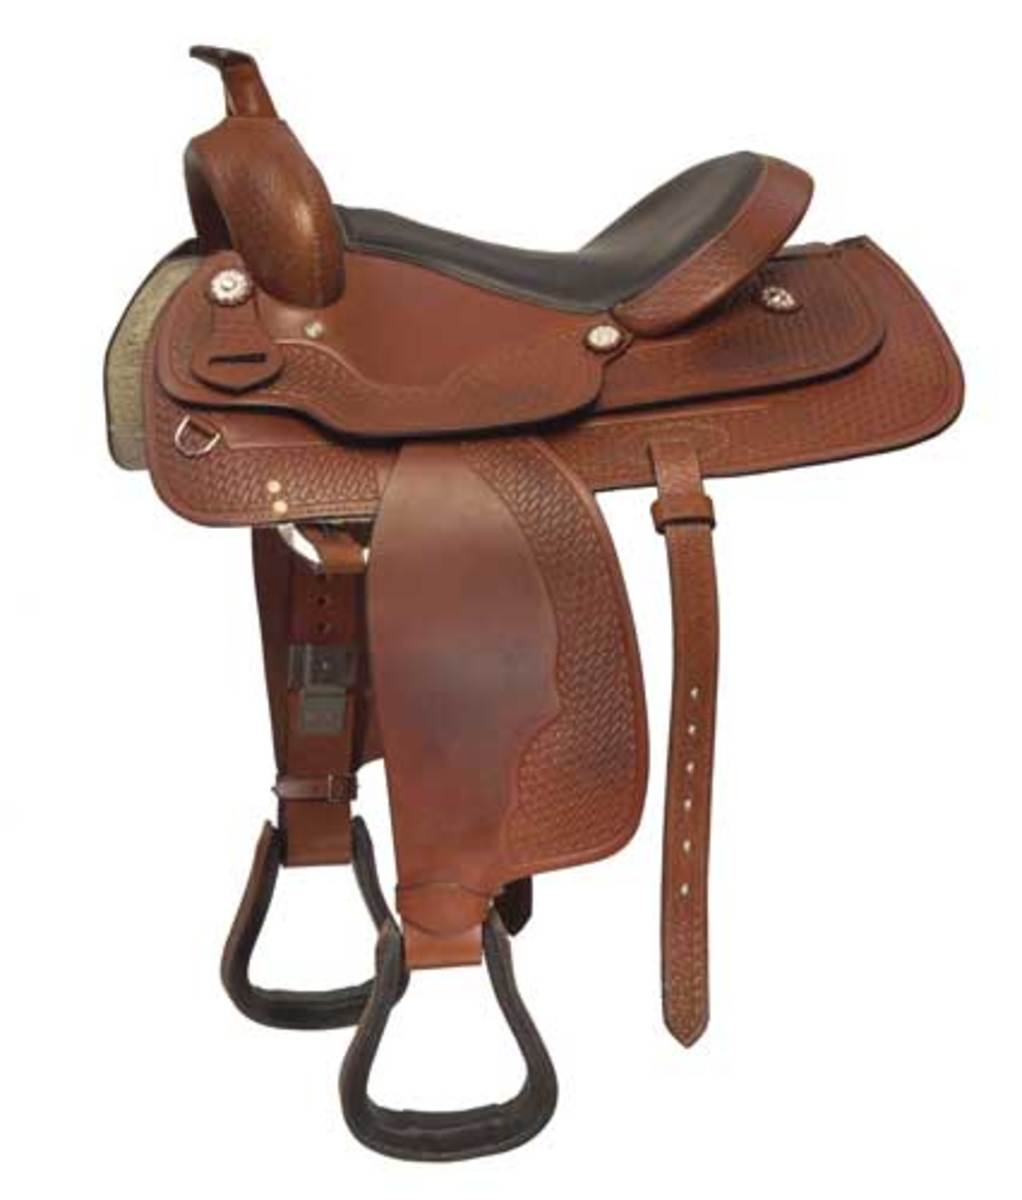 10 Different Types of Horse Riding Saddles | HowTheyPlay